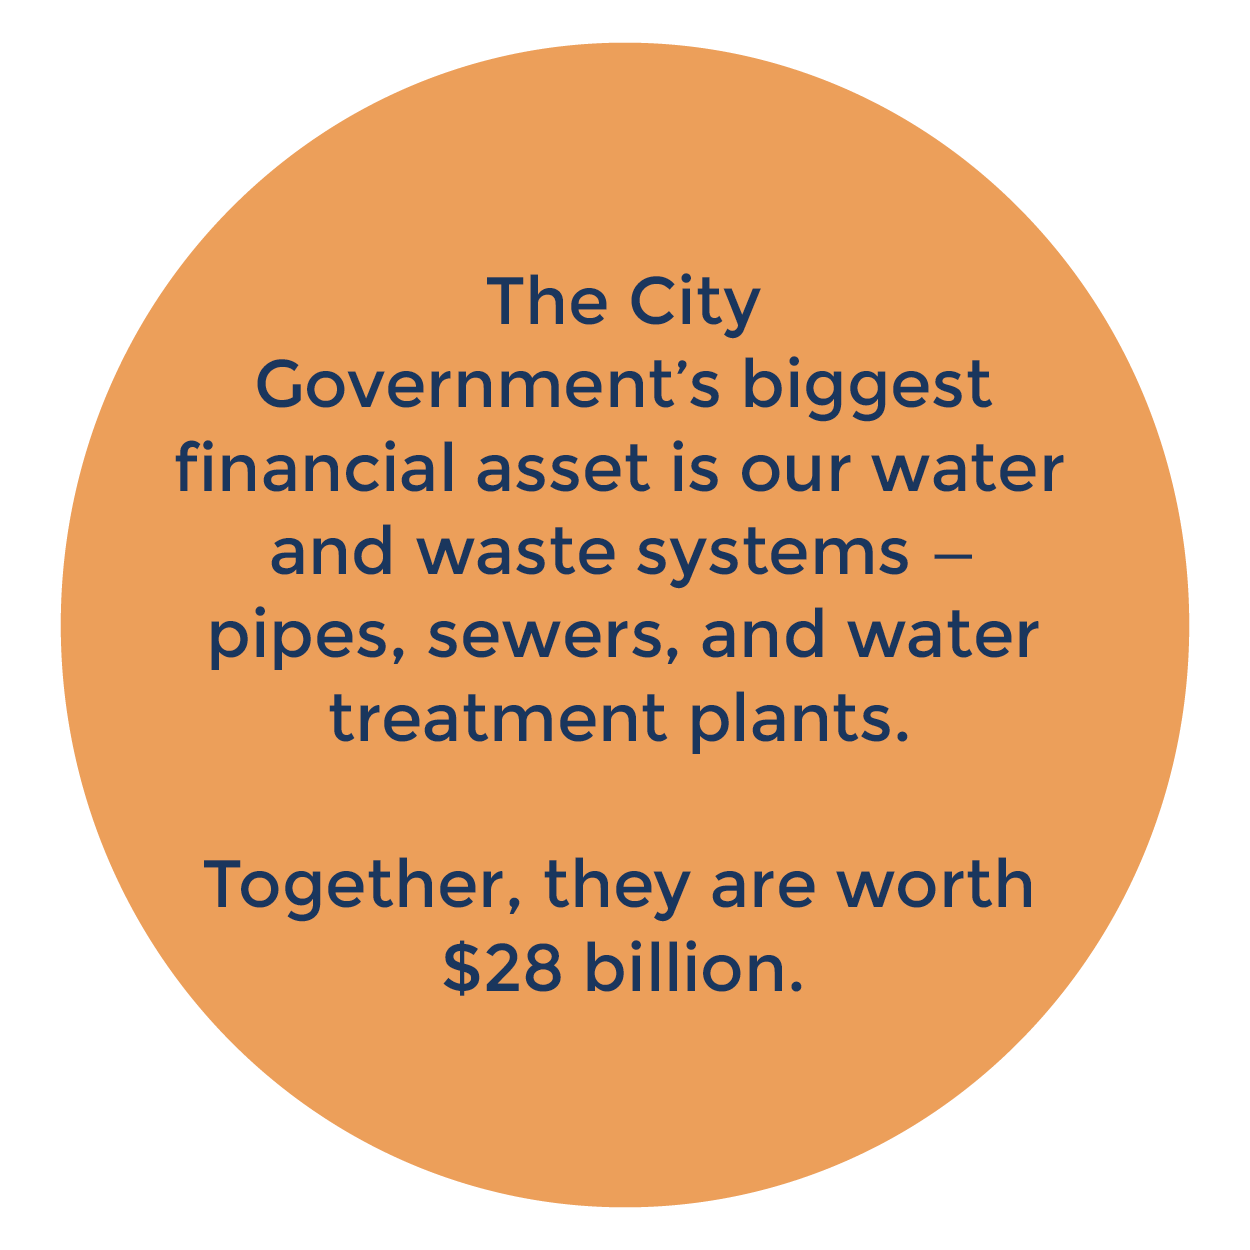 circle with the following text: The City Government's biggest financial asset is our water and waste systems - pipes, sewers, and water treatment plants. Together, they are worth $28 million.